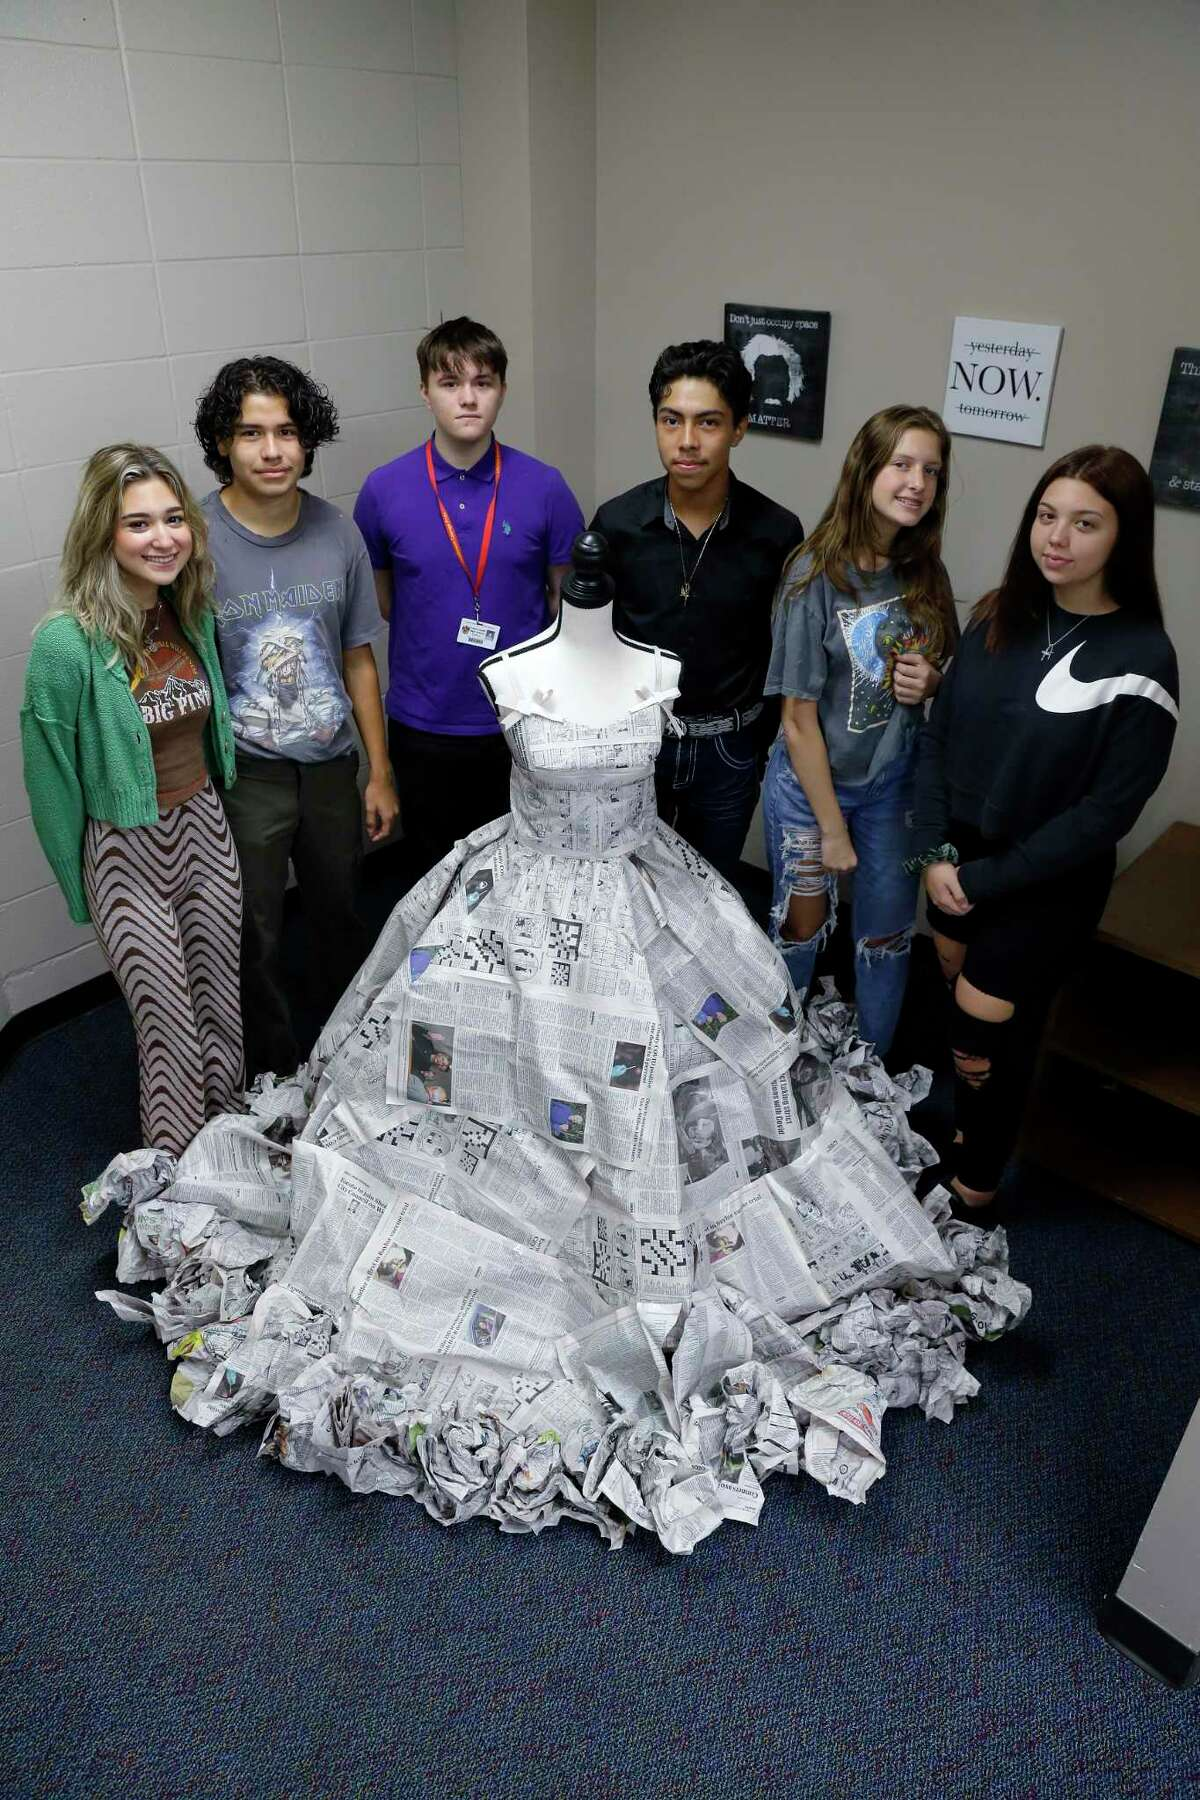 Students, from left, Reese Manchaca, Jessy Villa, Caden Brown, Jose Bolanos, Kaylee Duncan, and Jasmine Van Veckhoven with their original dress designs made from newspapers at Caney Creek High School Thursday, Oct. 14, 2021 in Conroe, TX.